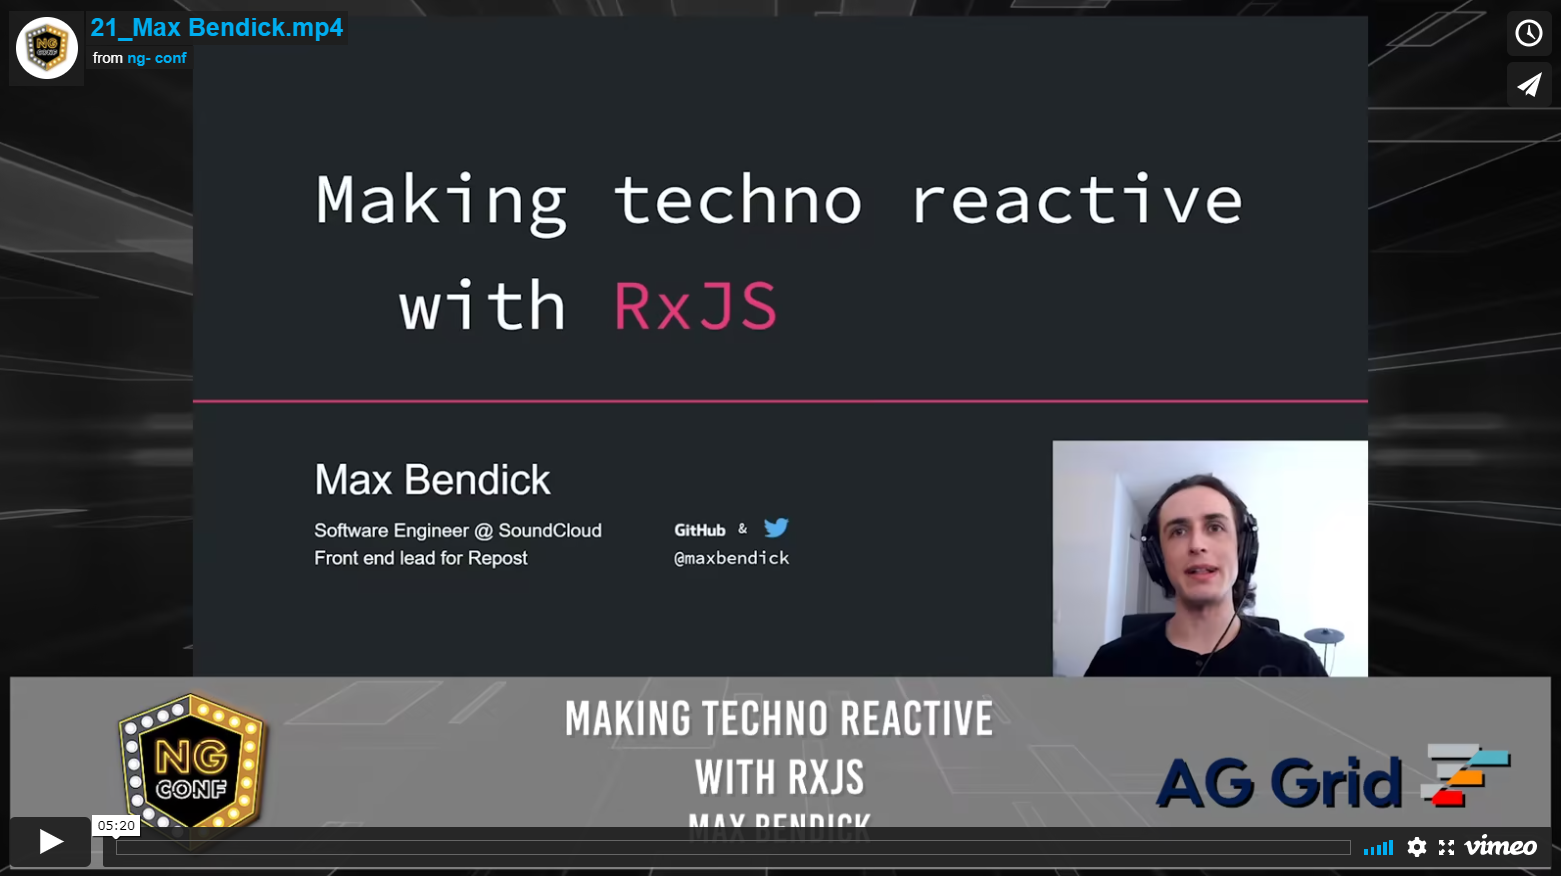 Making Techno Reactive with RxJS